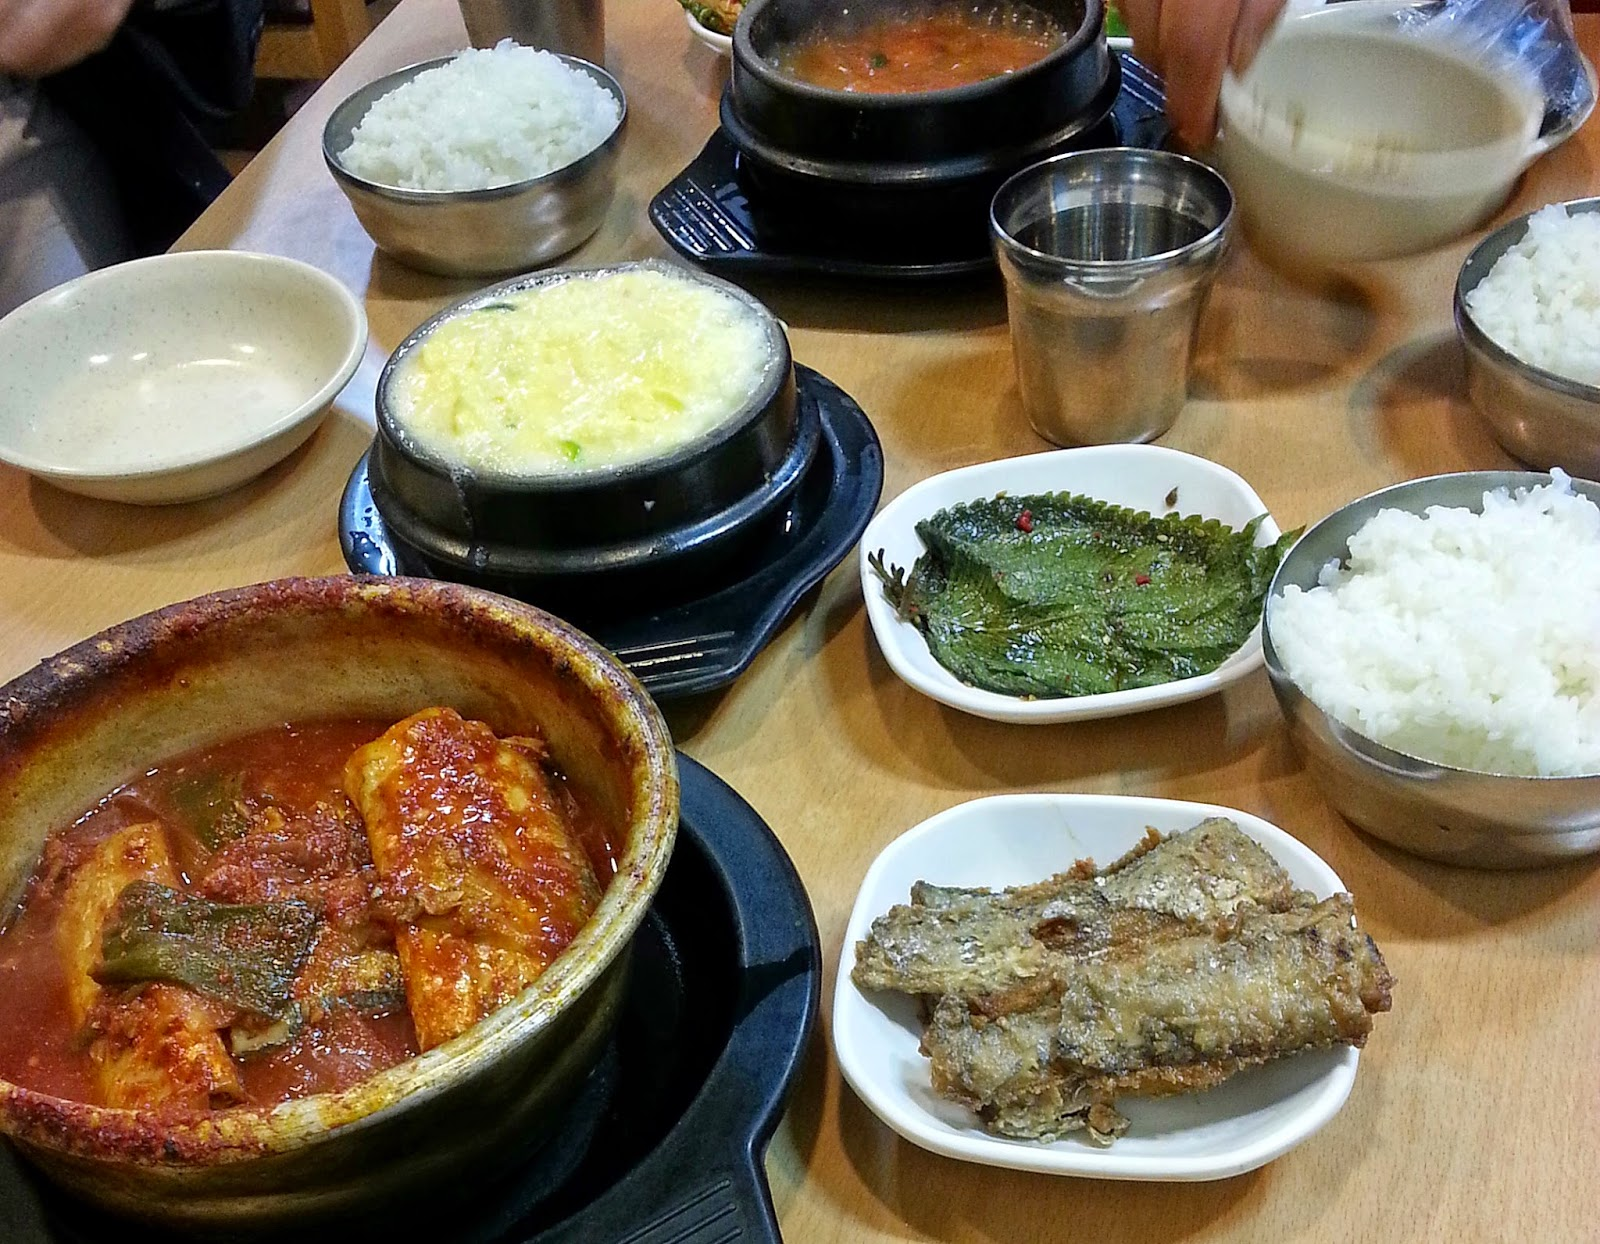 Food - Namdaemun Cutlass Fish 갈치조림 | meheartsoul.blogspot.com